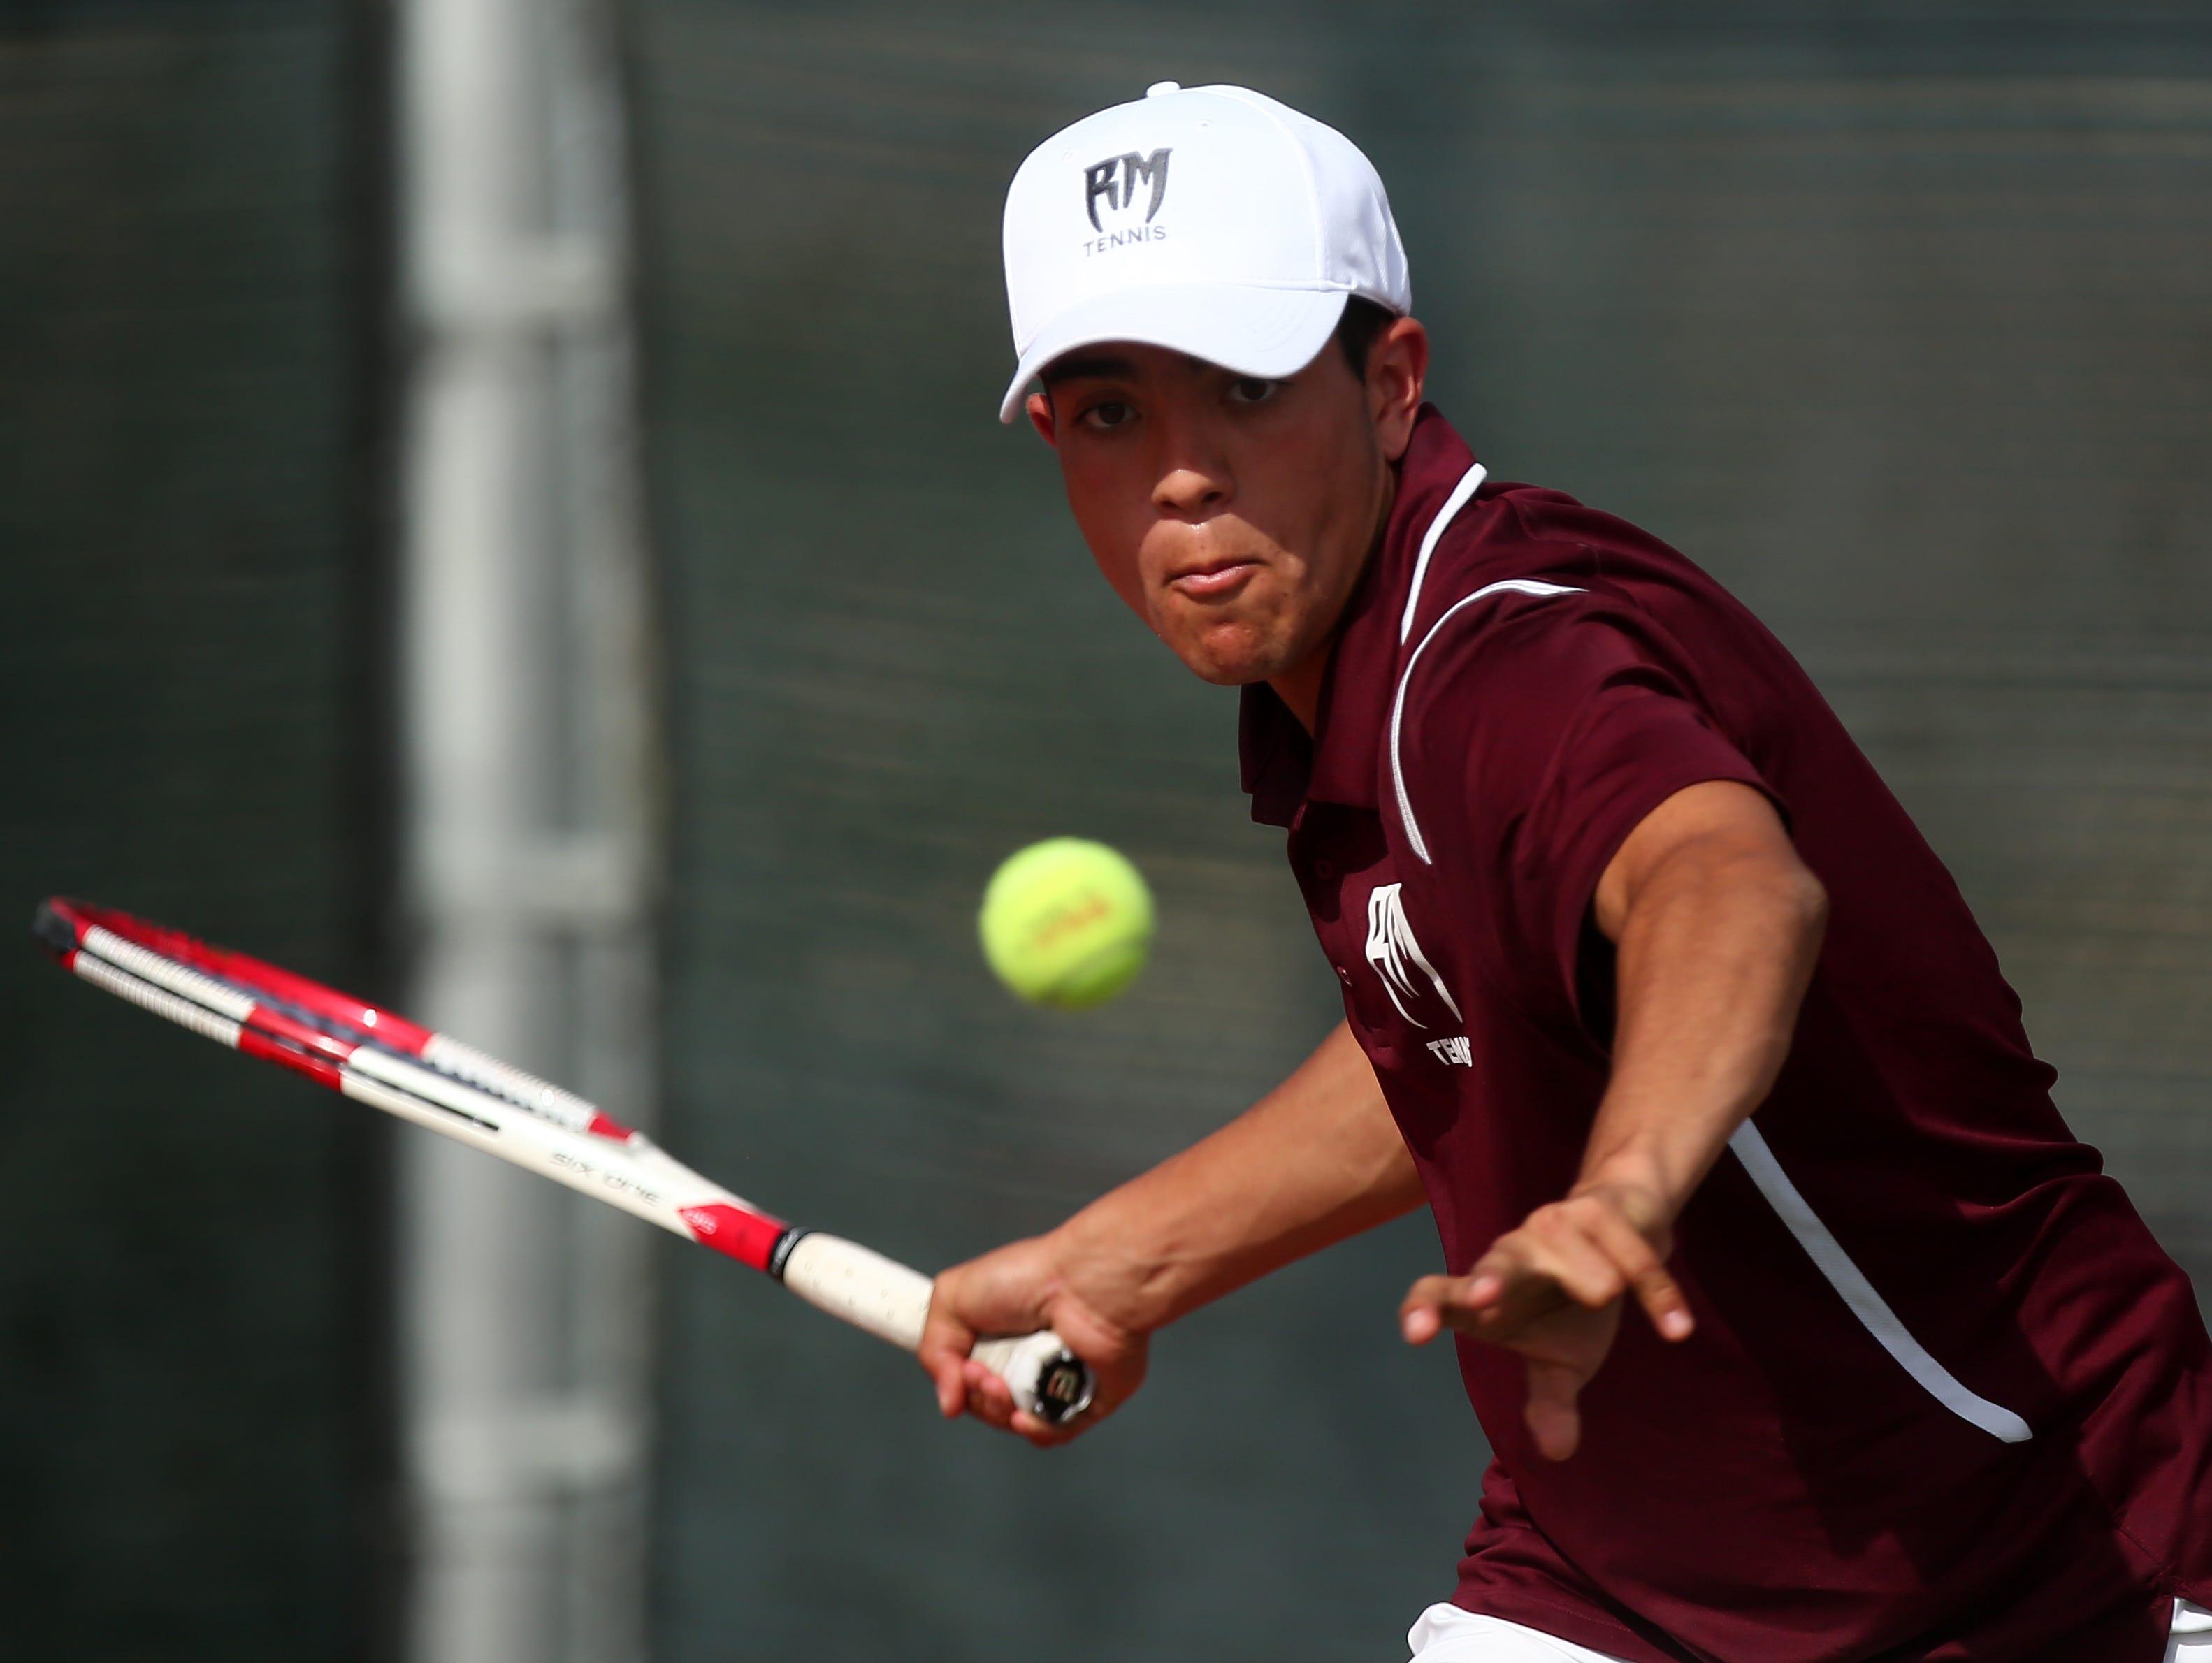 Ismael Cuevas of Rancho Mirage High School returns the ball to John Lanza of Twentynine Palms High School during a tennis match Wednesday, April 6, 2016, in Rancho Mirage, Calif.